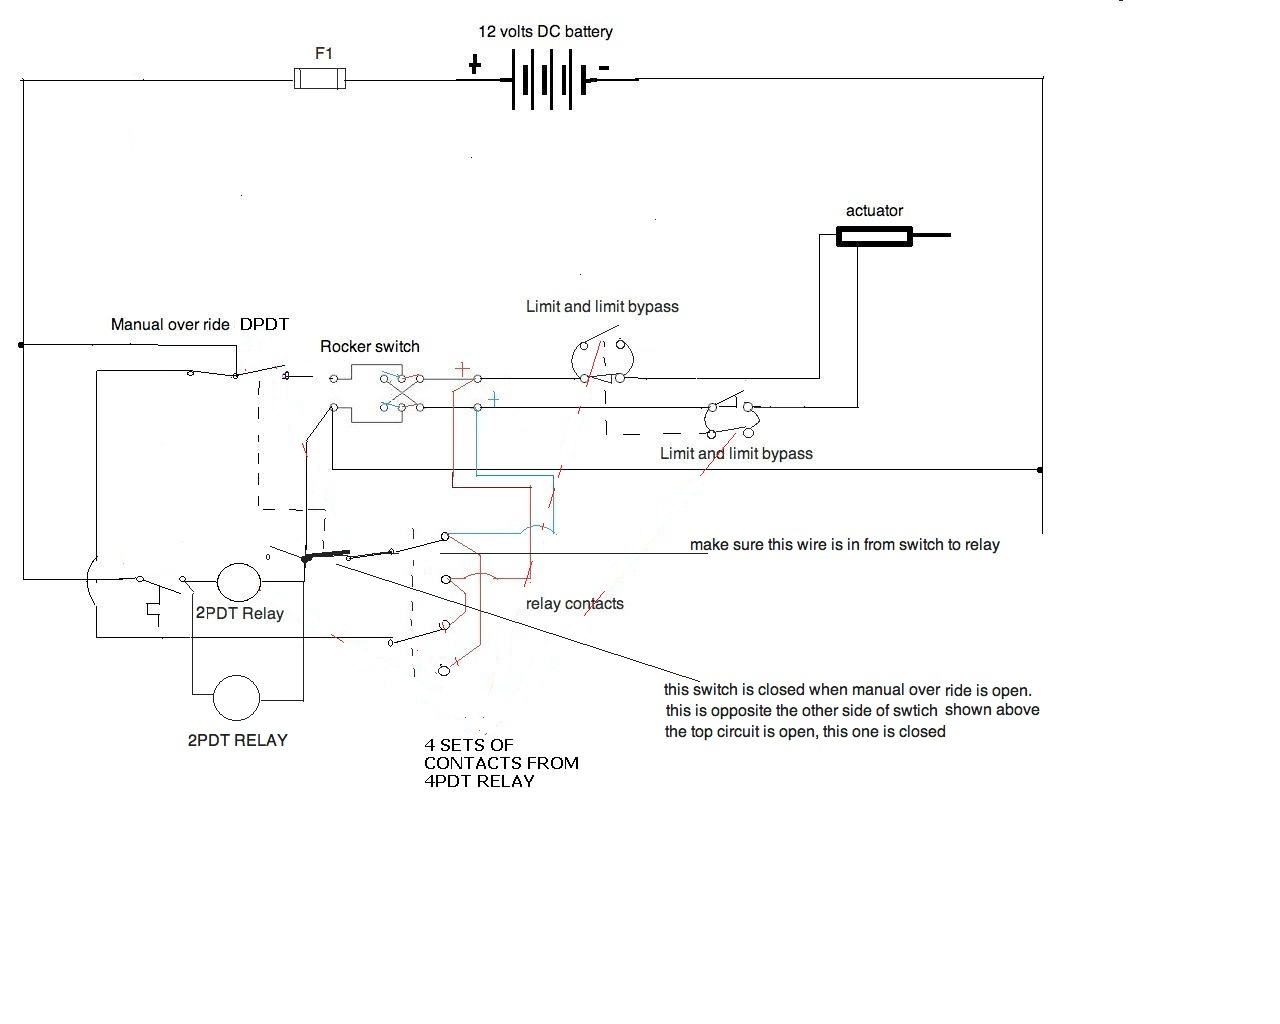 I Need A Wiring Diagram For 12v Application All Components Are 12 Volt Air Valve To Hook Linear Actuator Thermostat